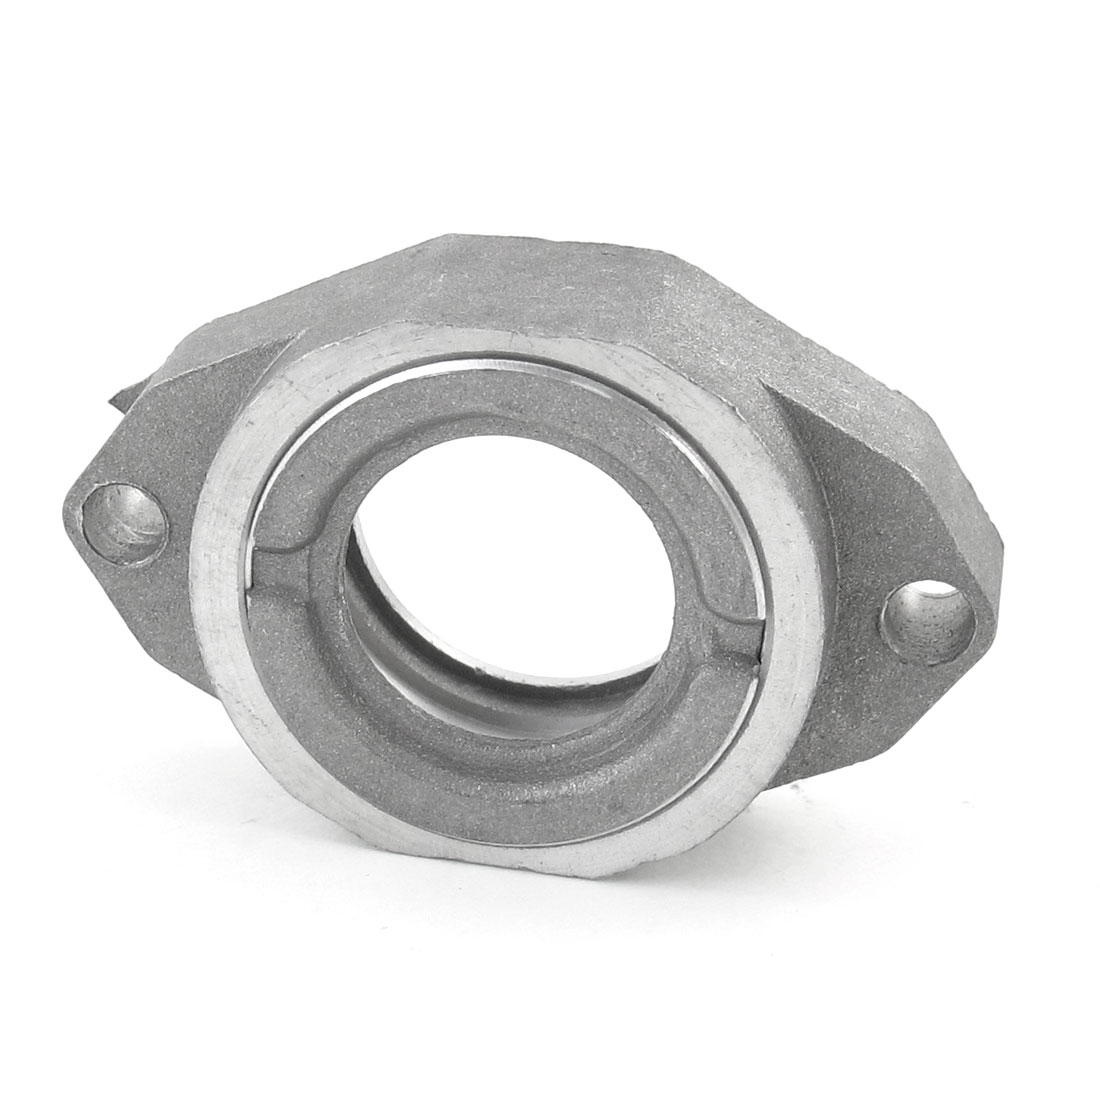 Aluminum 5.3mm Mount Angle Grinder Bearing Seat for Hitachi 4SB